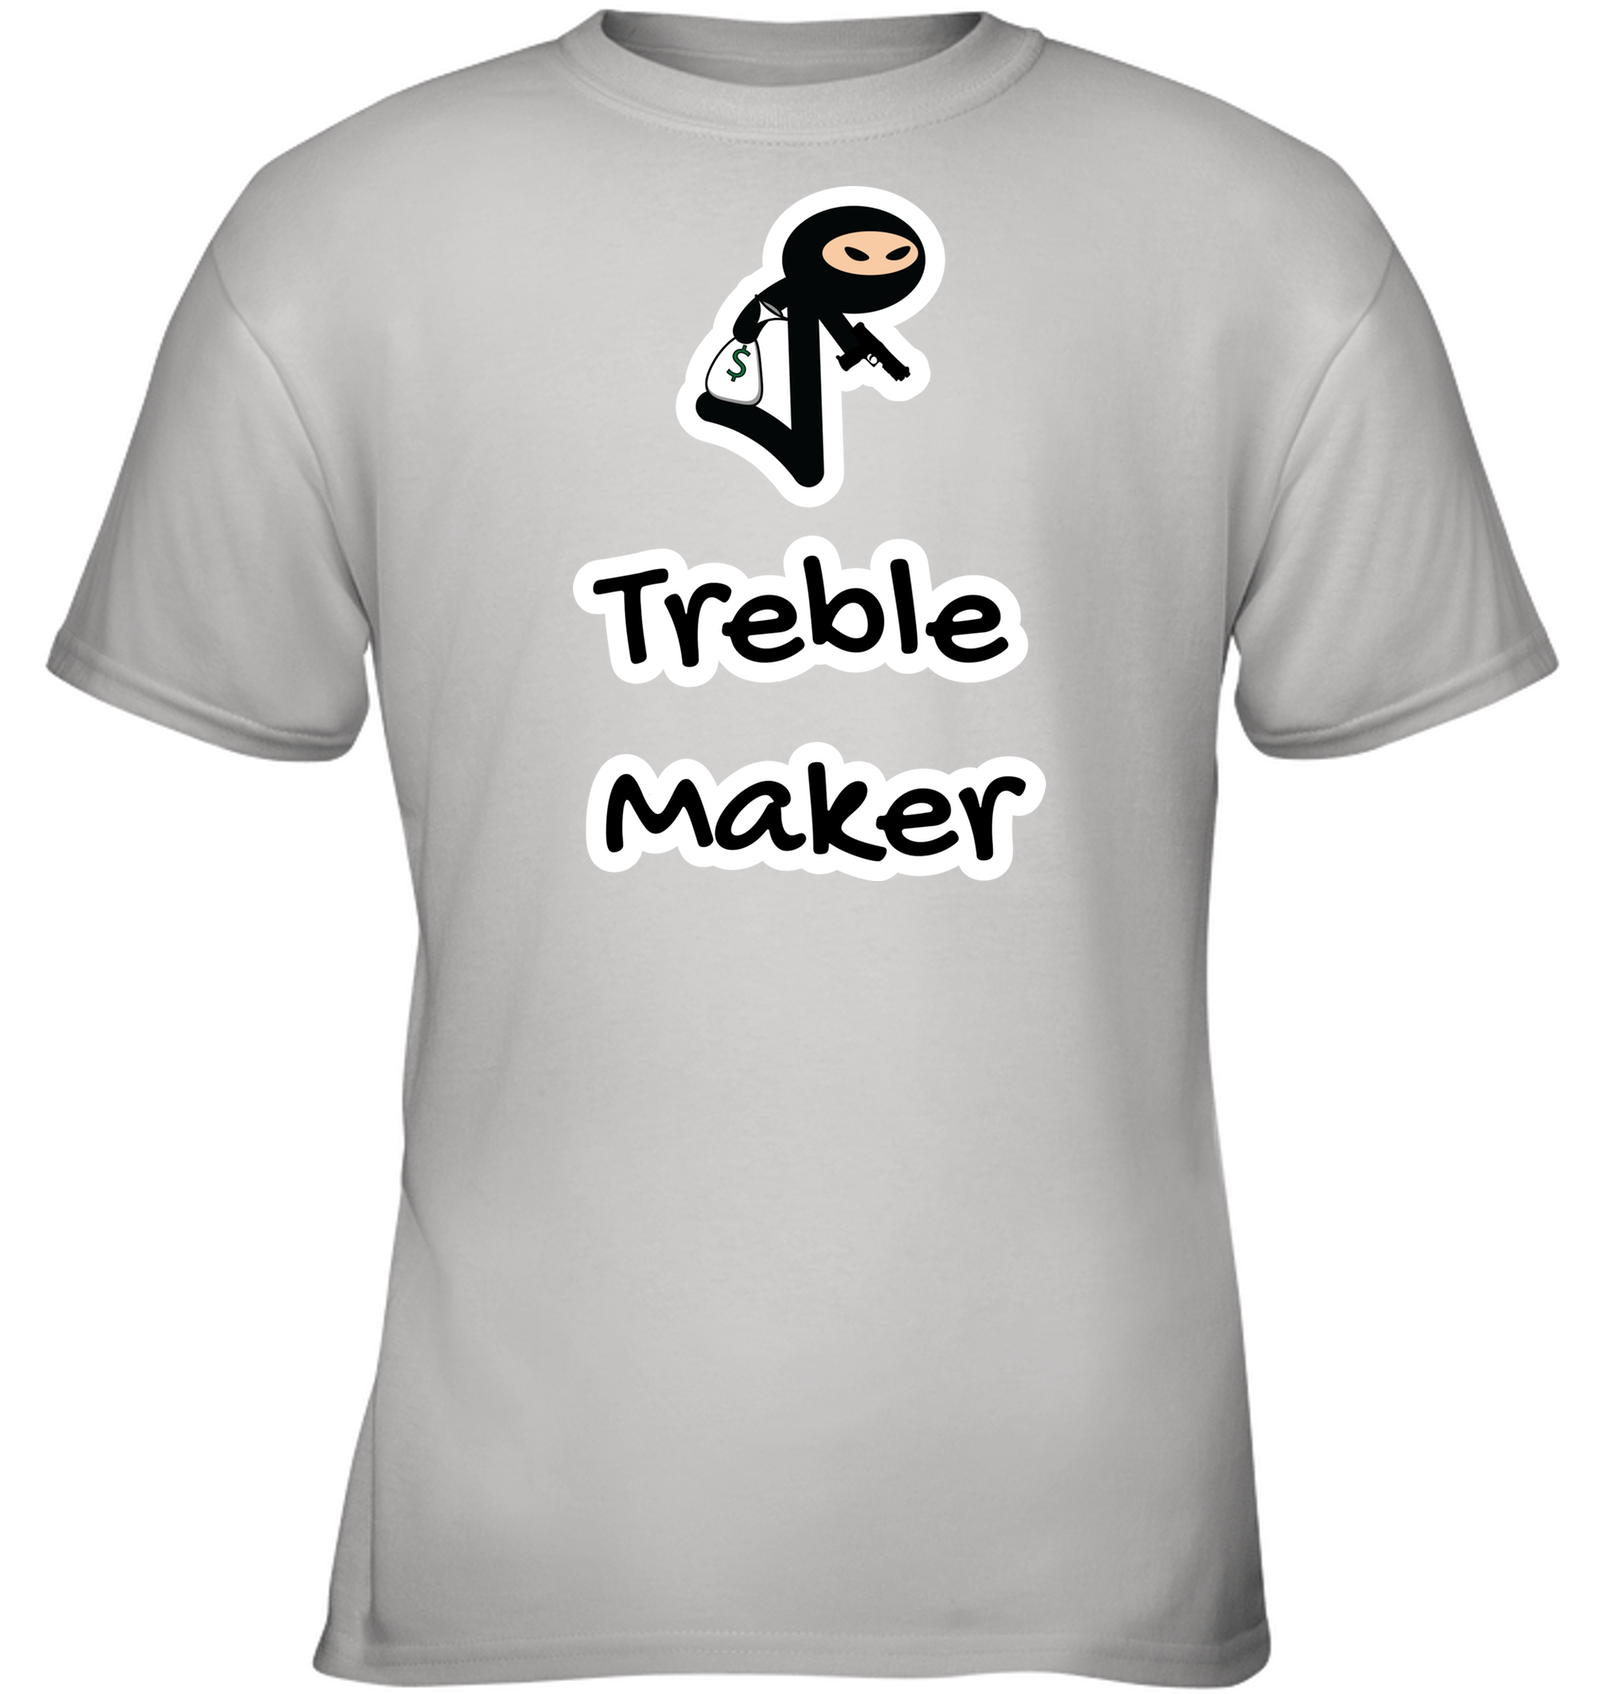 Treble Maker Robber - Gildan Youth Short Sleeve T-Shirt